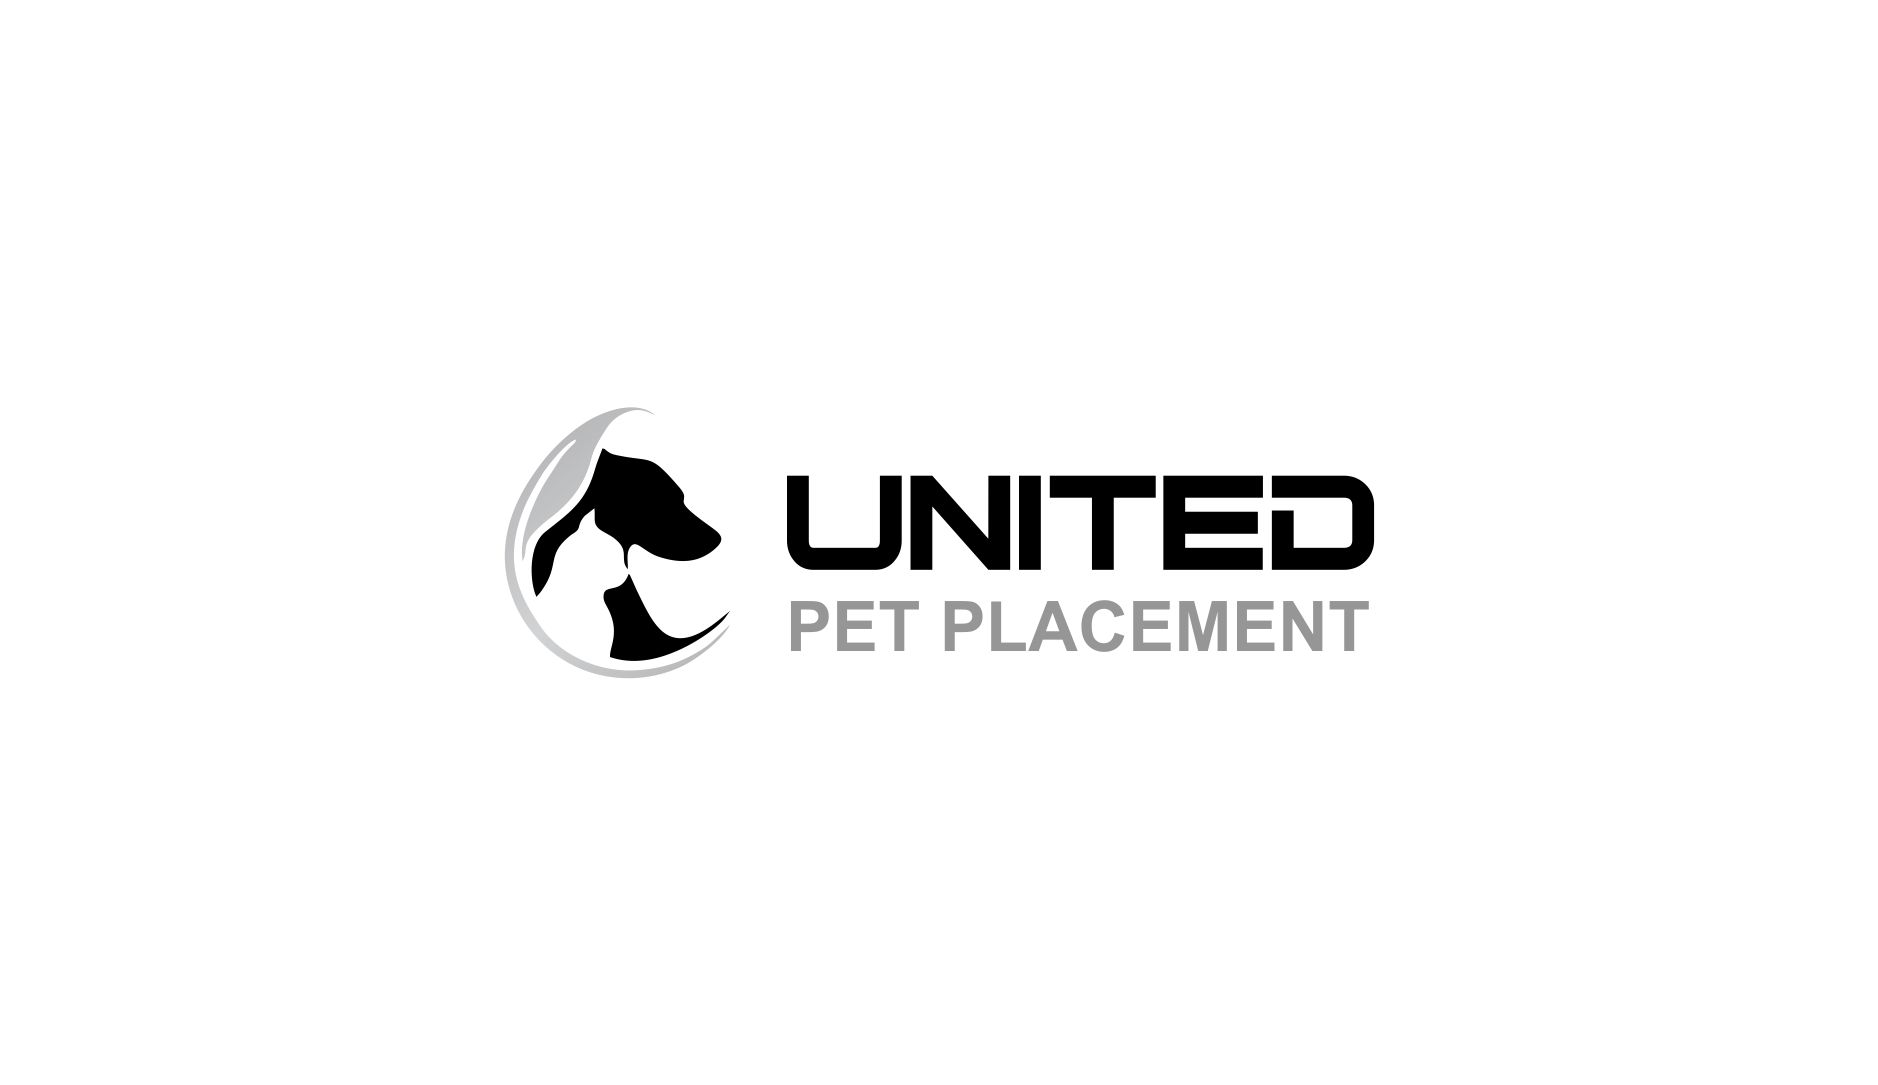 Logo Design by Muhammad Aslam - Entry No. 13 in the Logo Design Contest Artistic Logo Design for united pet placement.